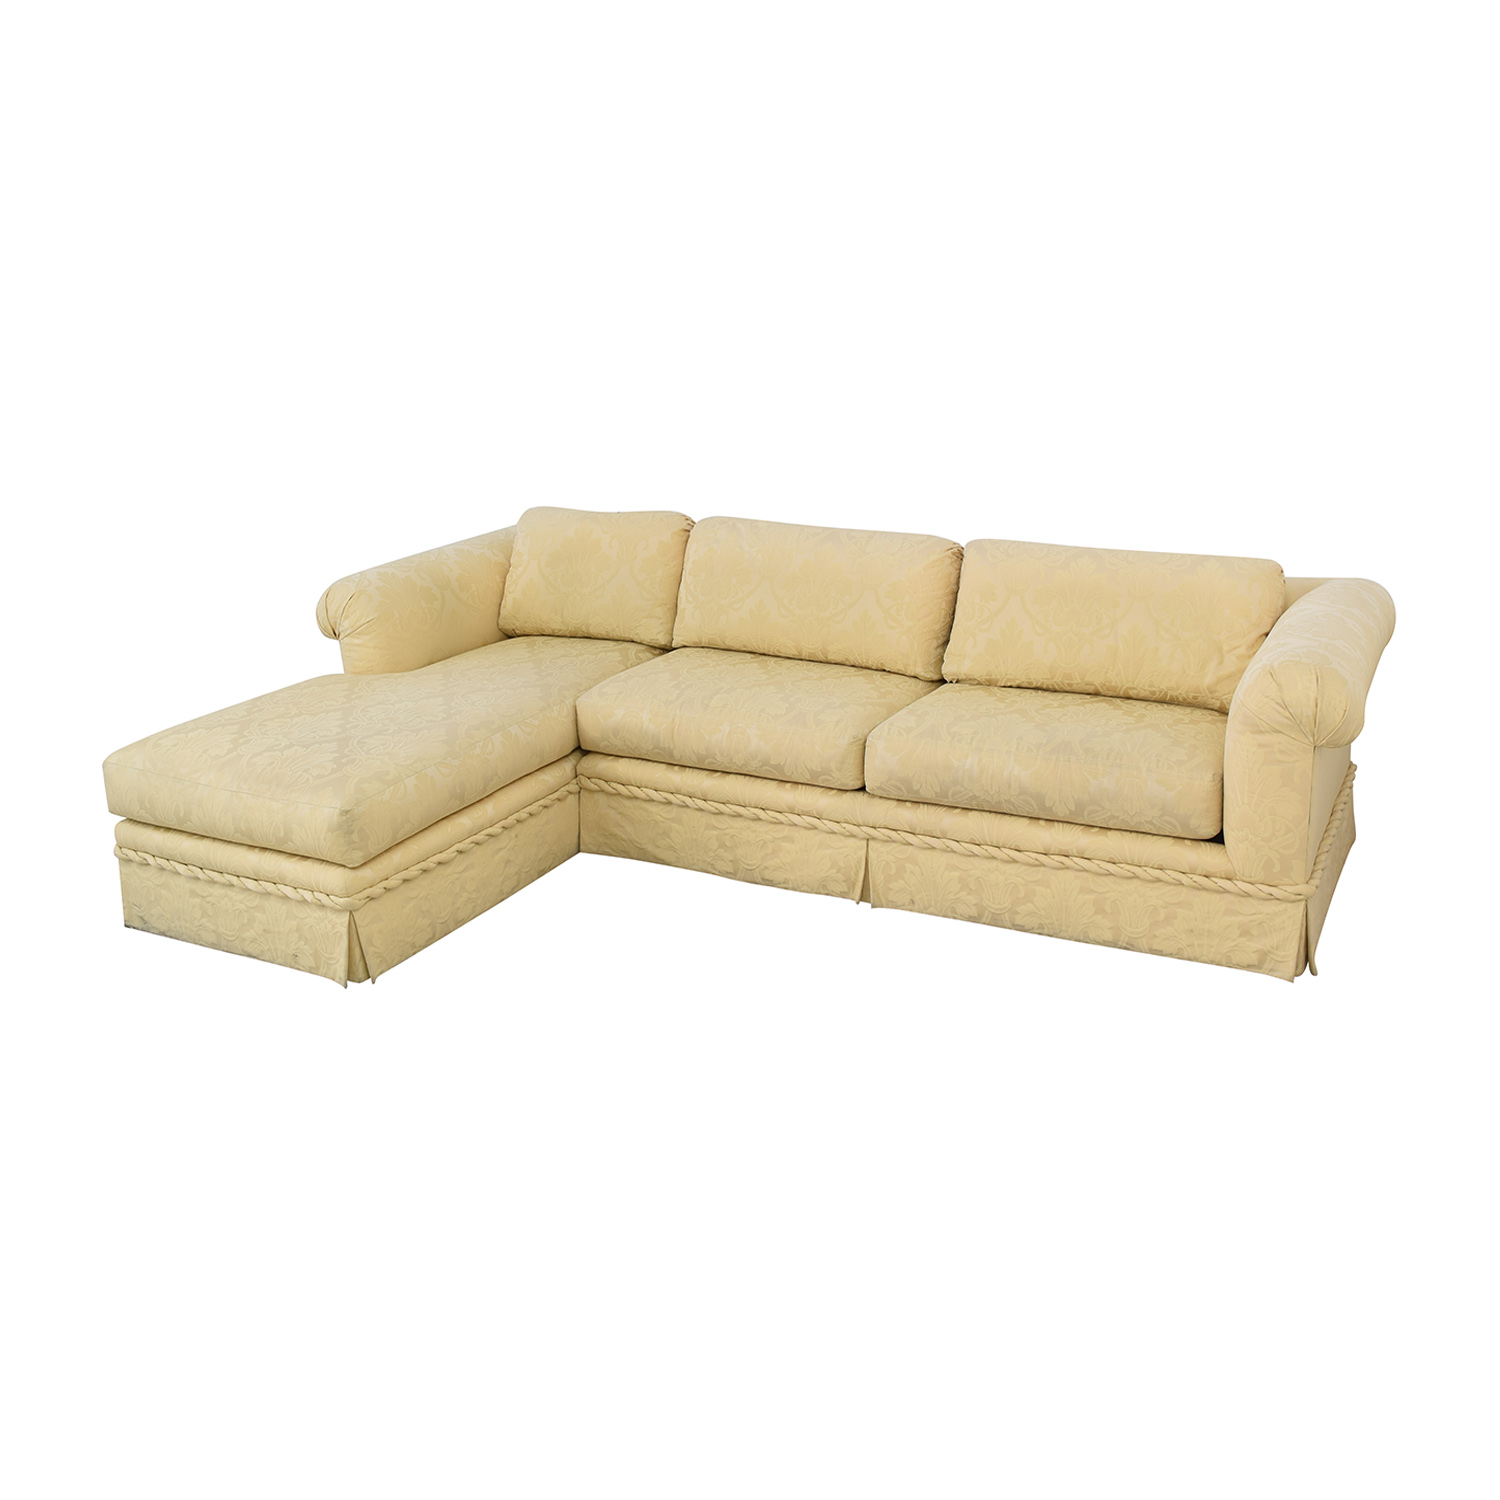 Kreiss Kreiss Chaise Sectional Sofa second hand